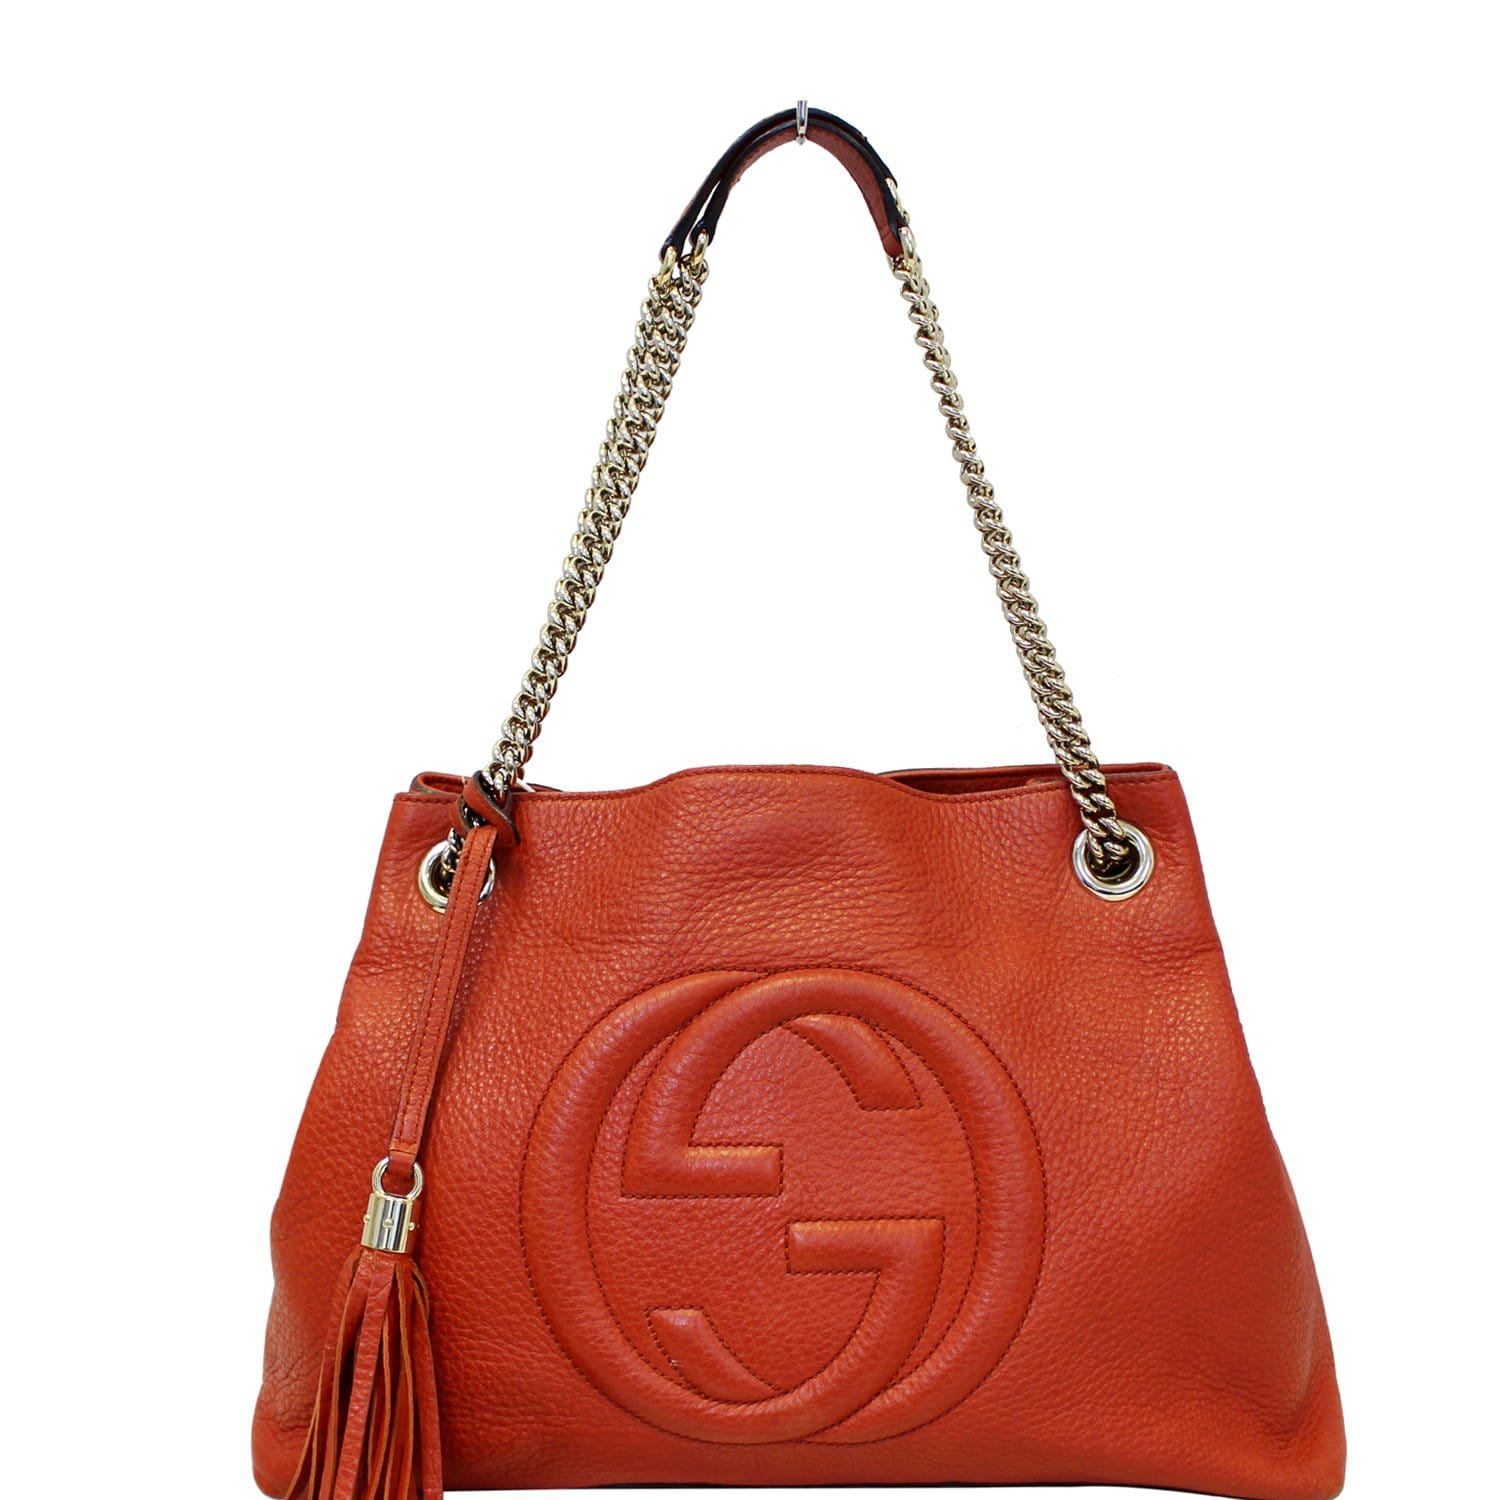 8dd3bfd353e GUCCI Soho Pebbled Leather Chain Shoulder Bag Red 308982-US